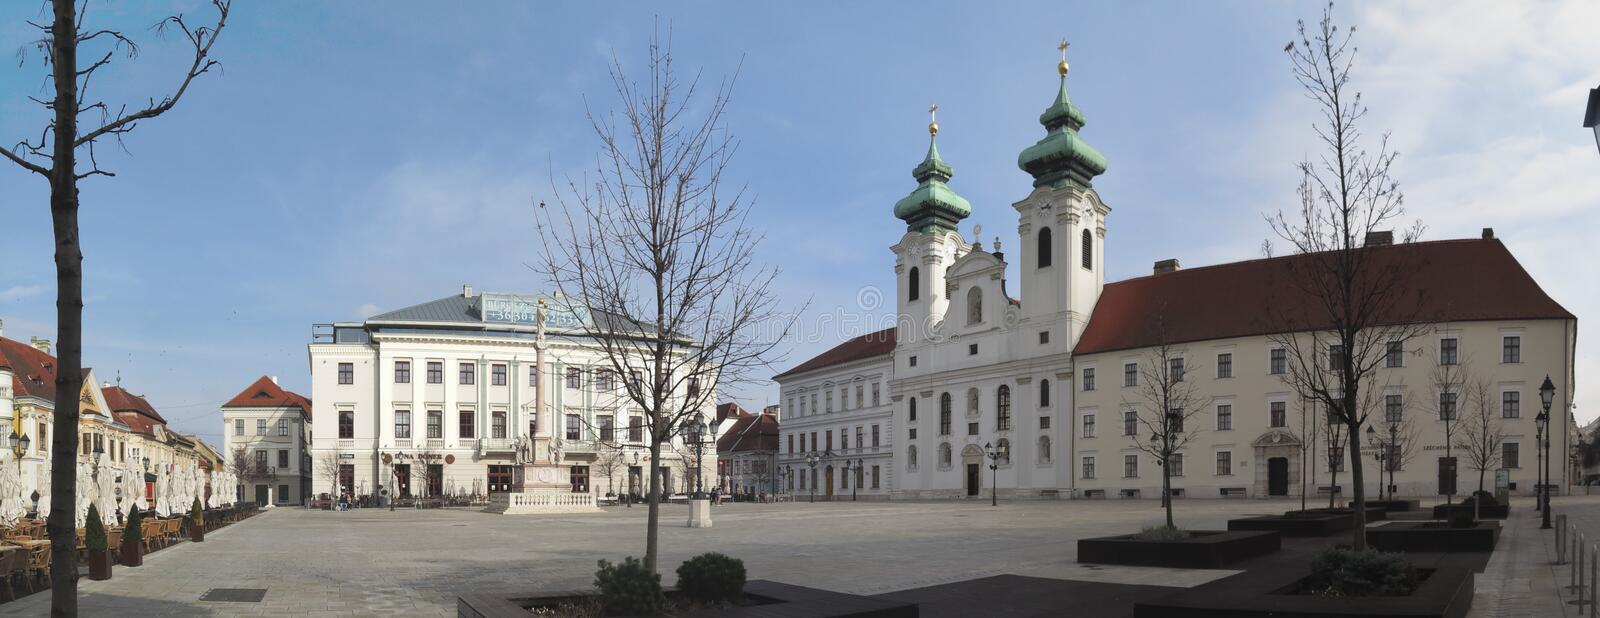 Szechenyi ter square with church and city hall in Gyor in Hungary royalty free stock images